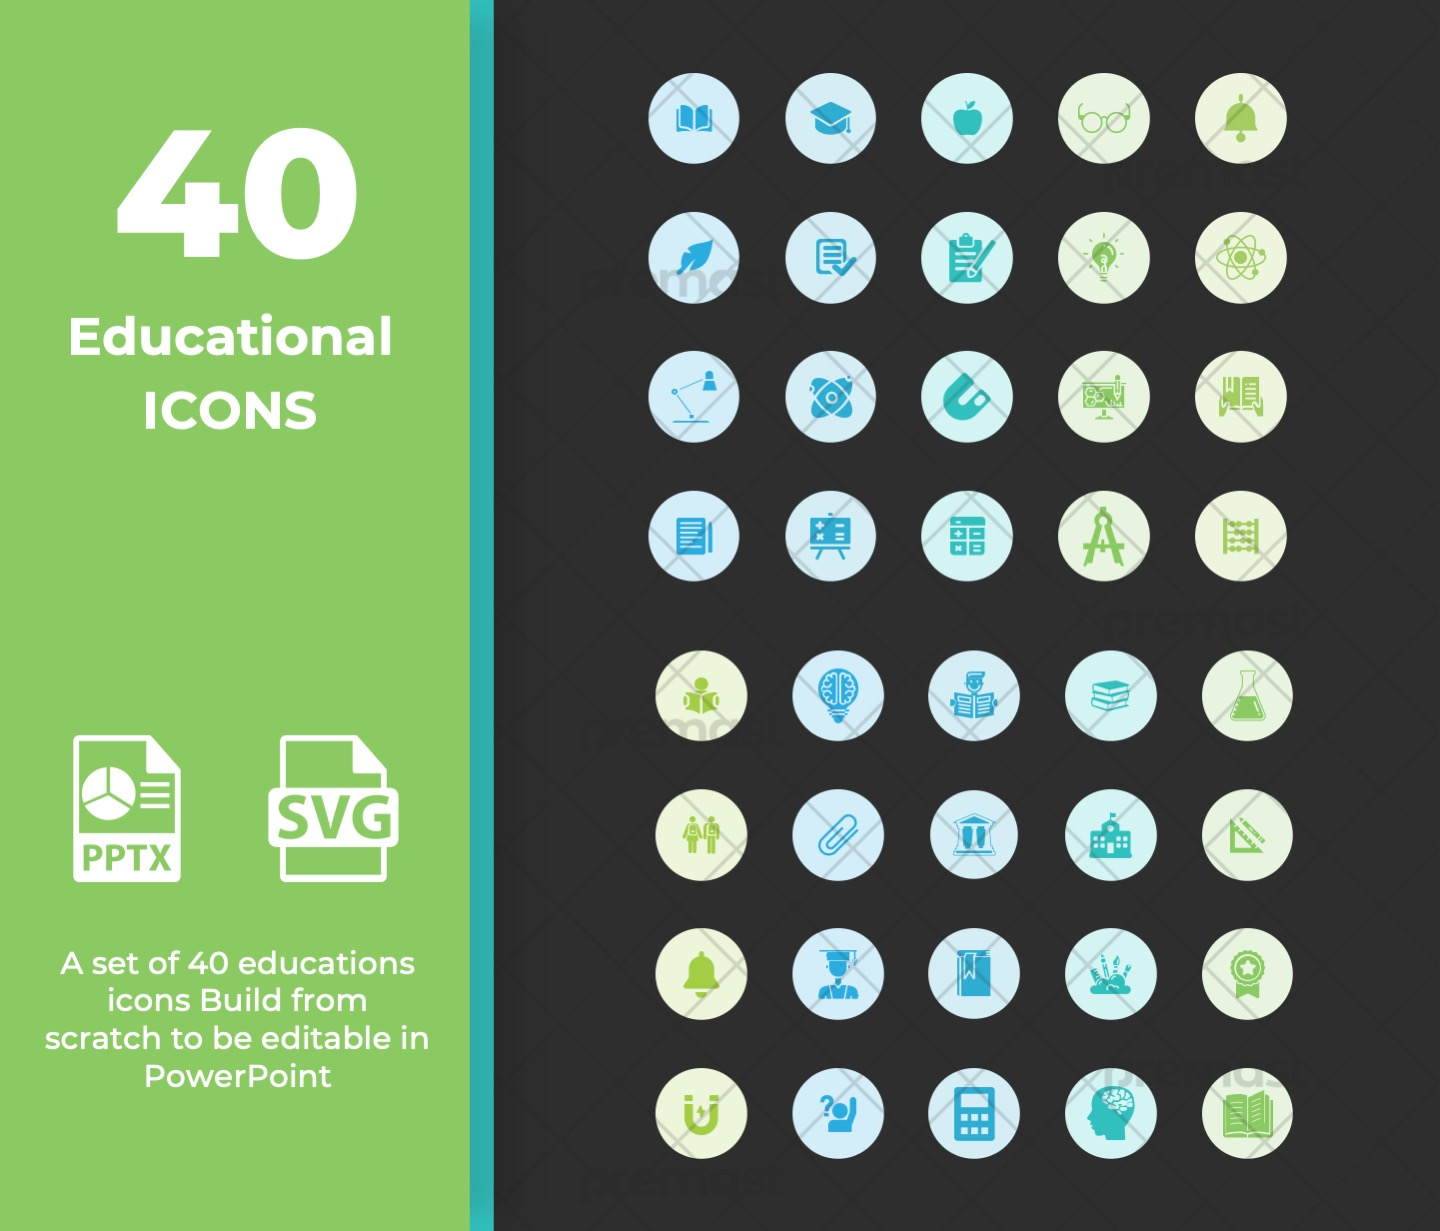 40 educational icons for powerpoint